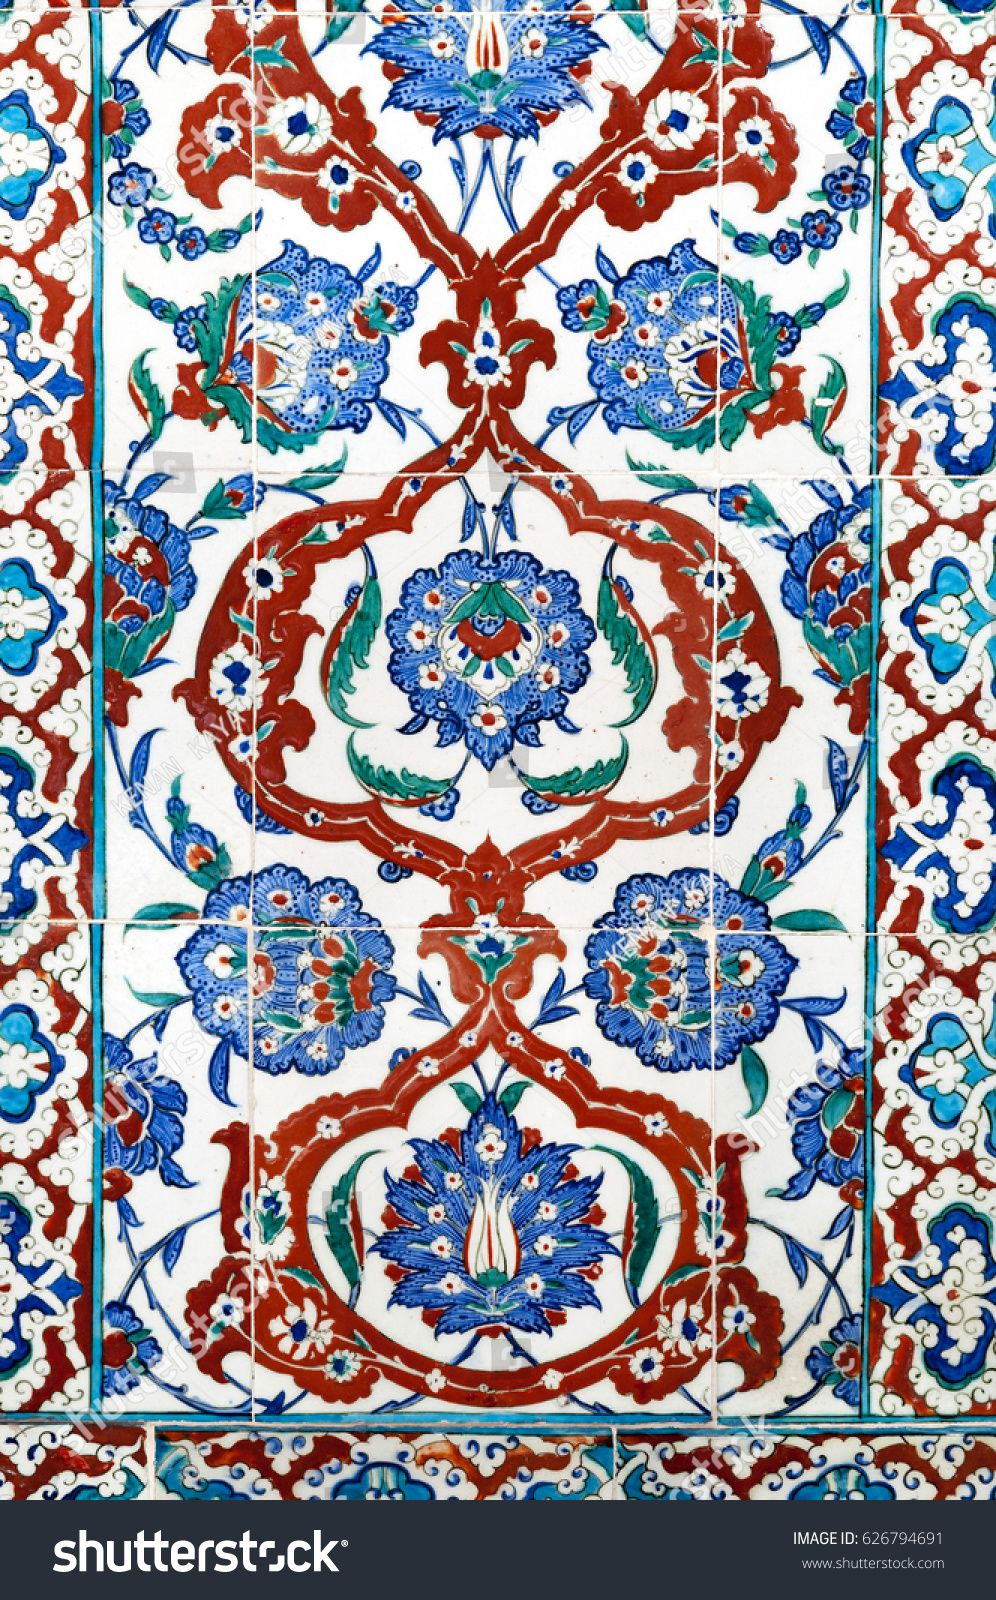 Ancient Ottoman patterned tile composition. | Çini | Pinterest ...